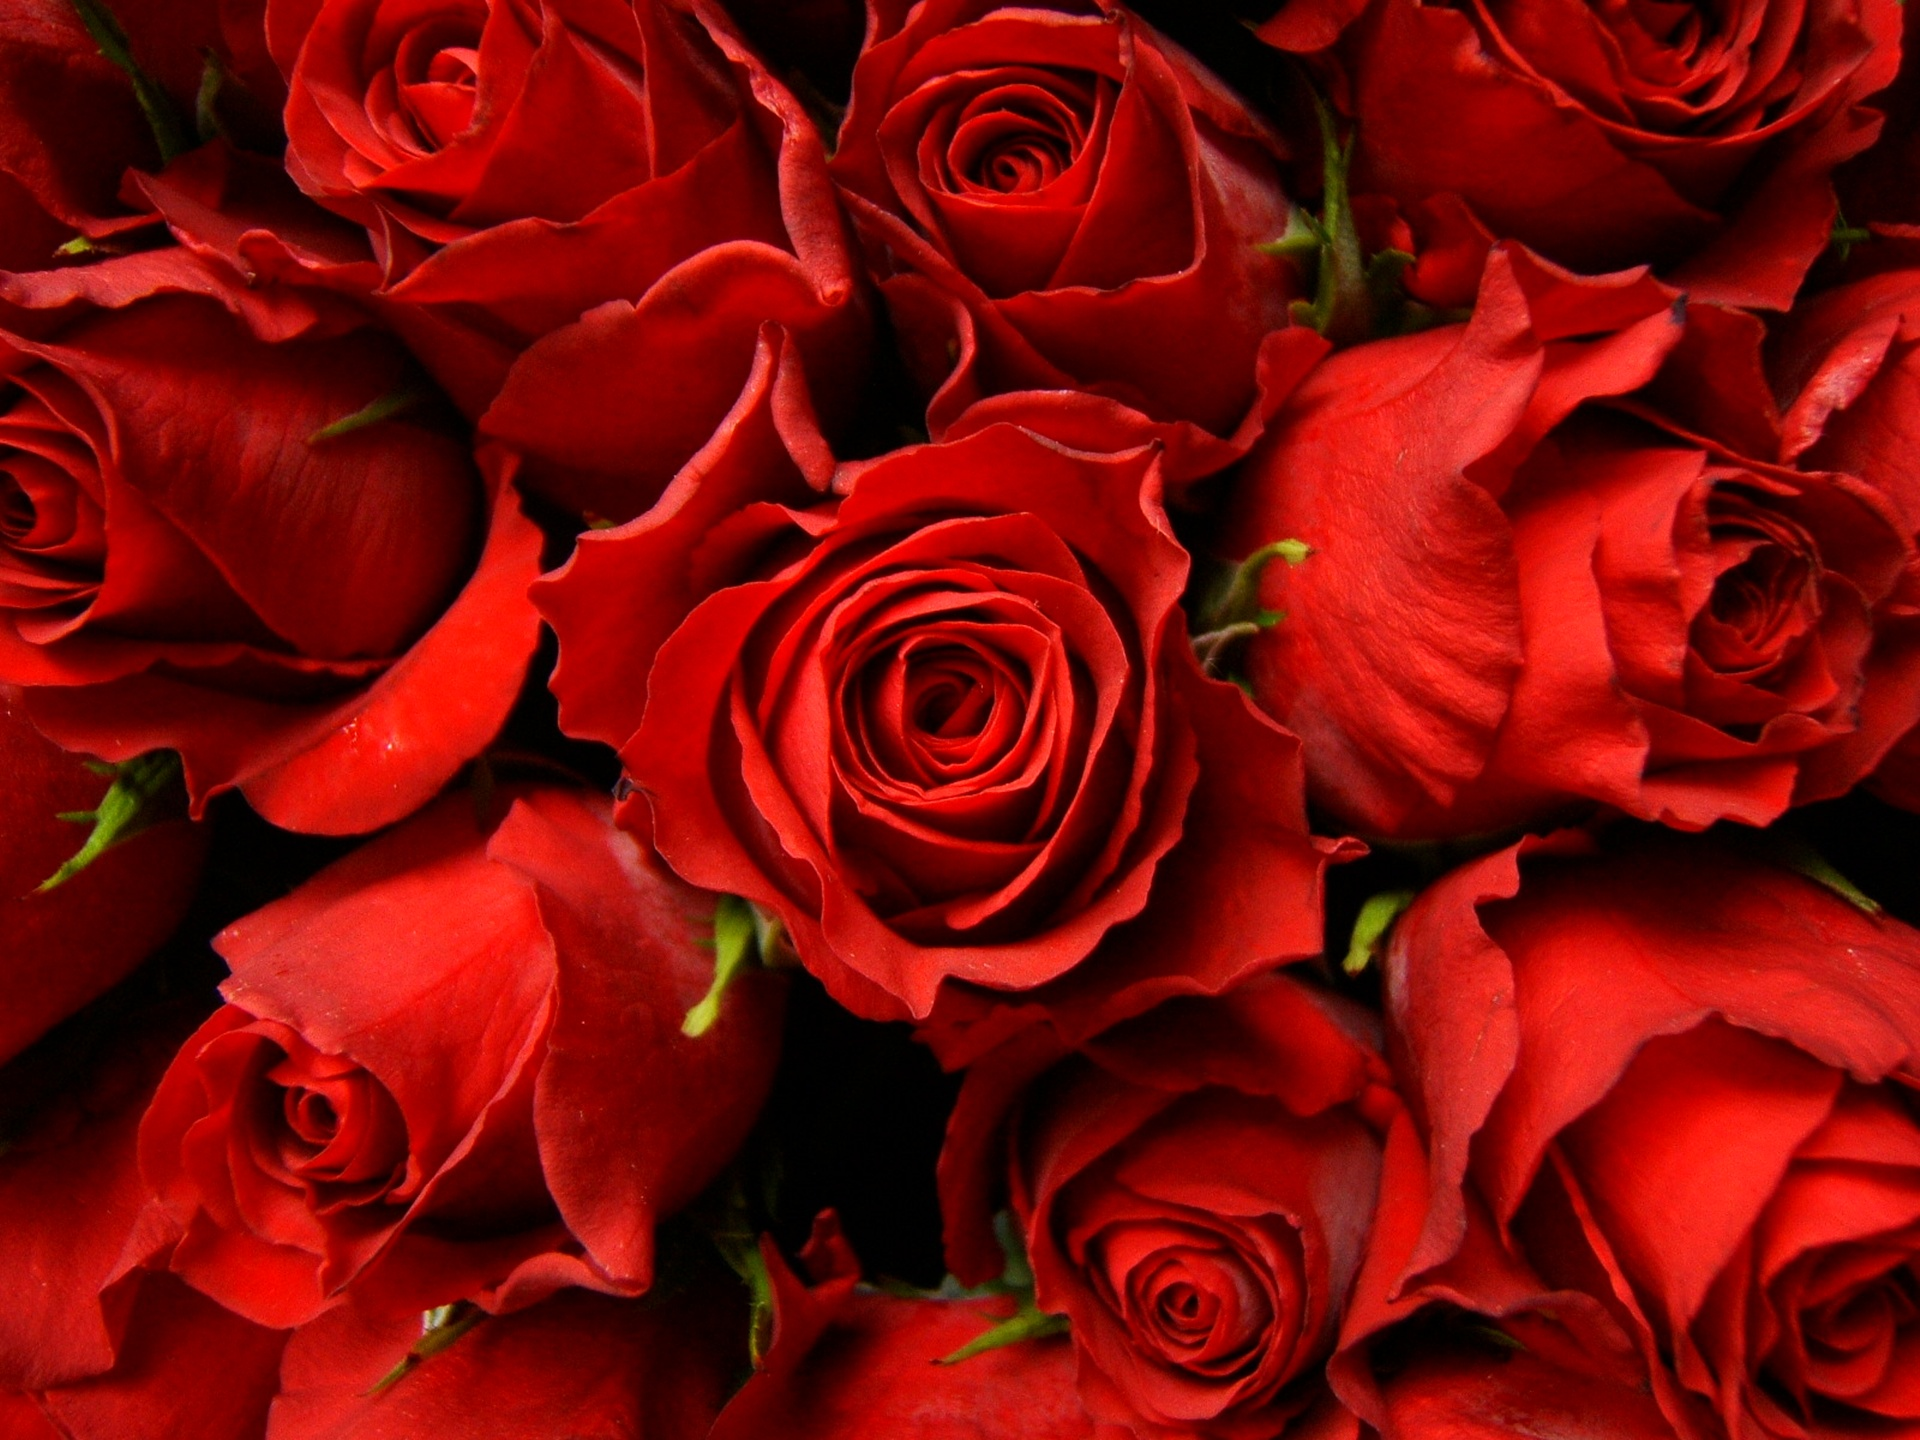 Red roses wallpaper Wallpaper Wide HD 1920x1440